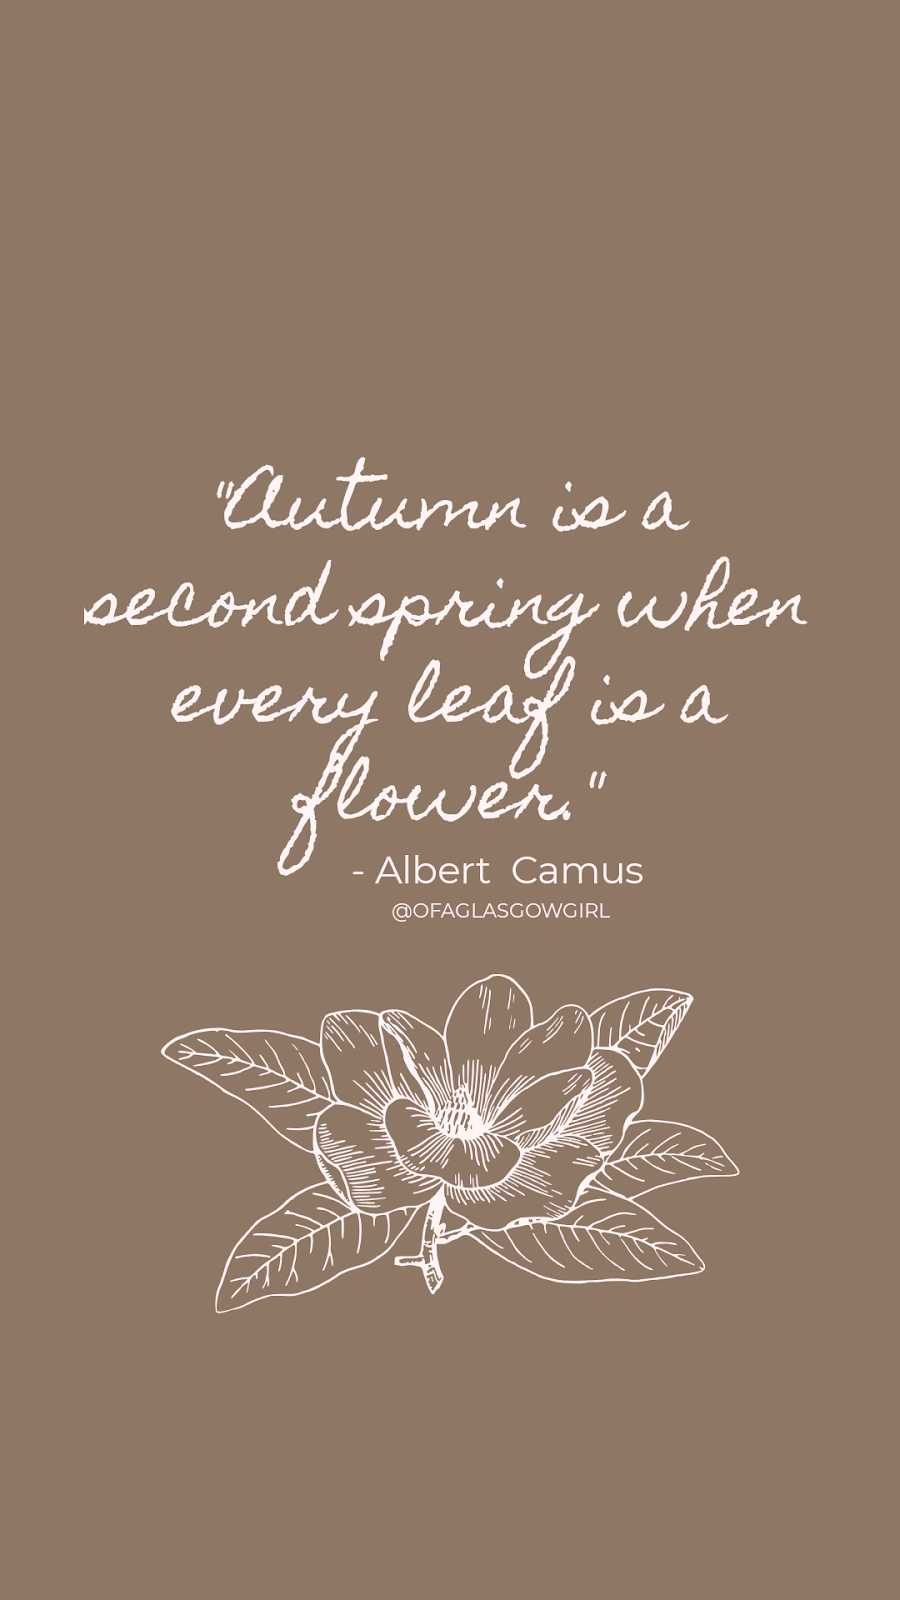 "Quote graphic with a quote by Albert Camus ""Autumn is a second spring when every leaf is a flower"""" created by @ofaglasgowgirl. on a light brown background with an outline of a flower below it in white."